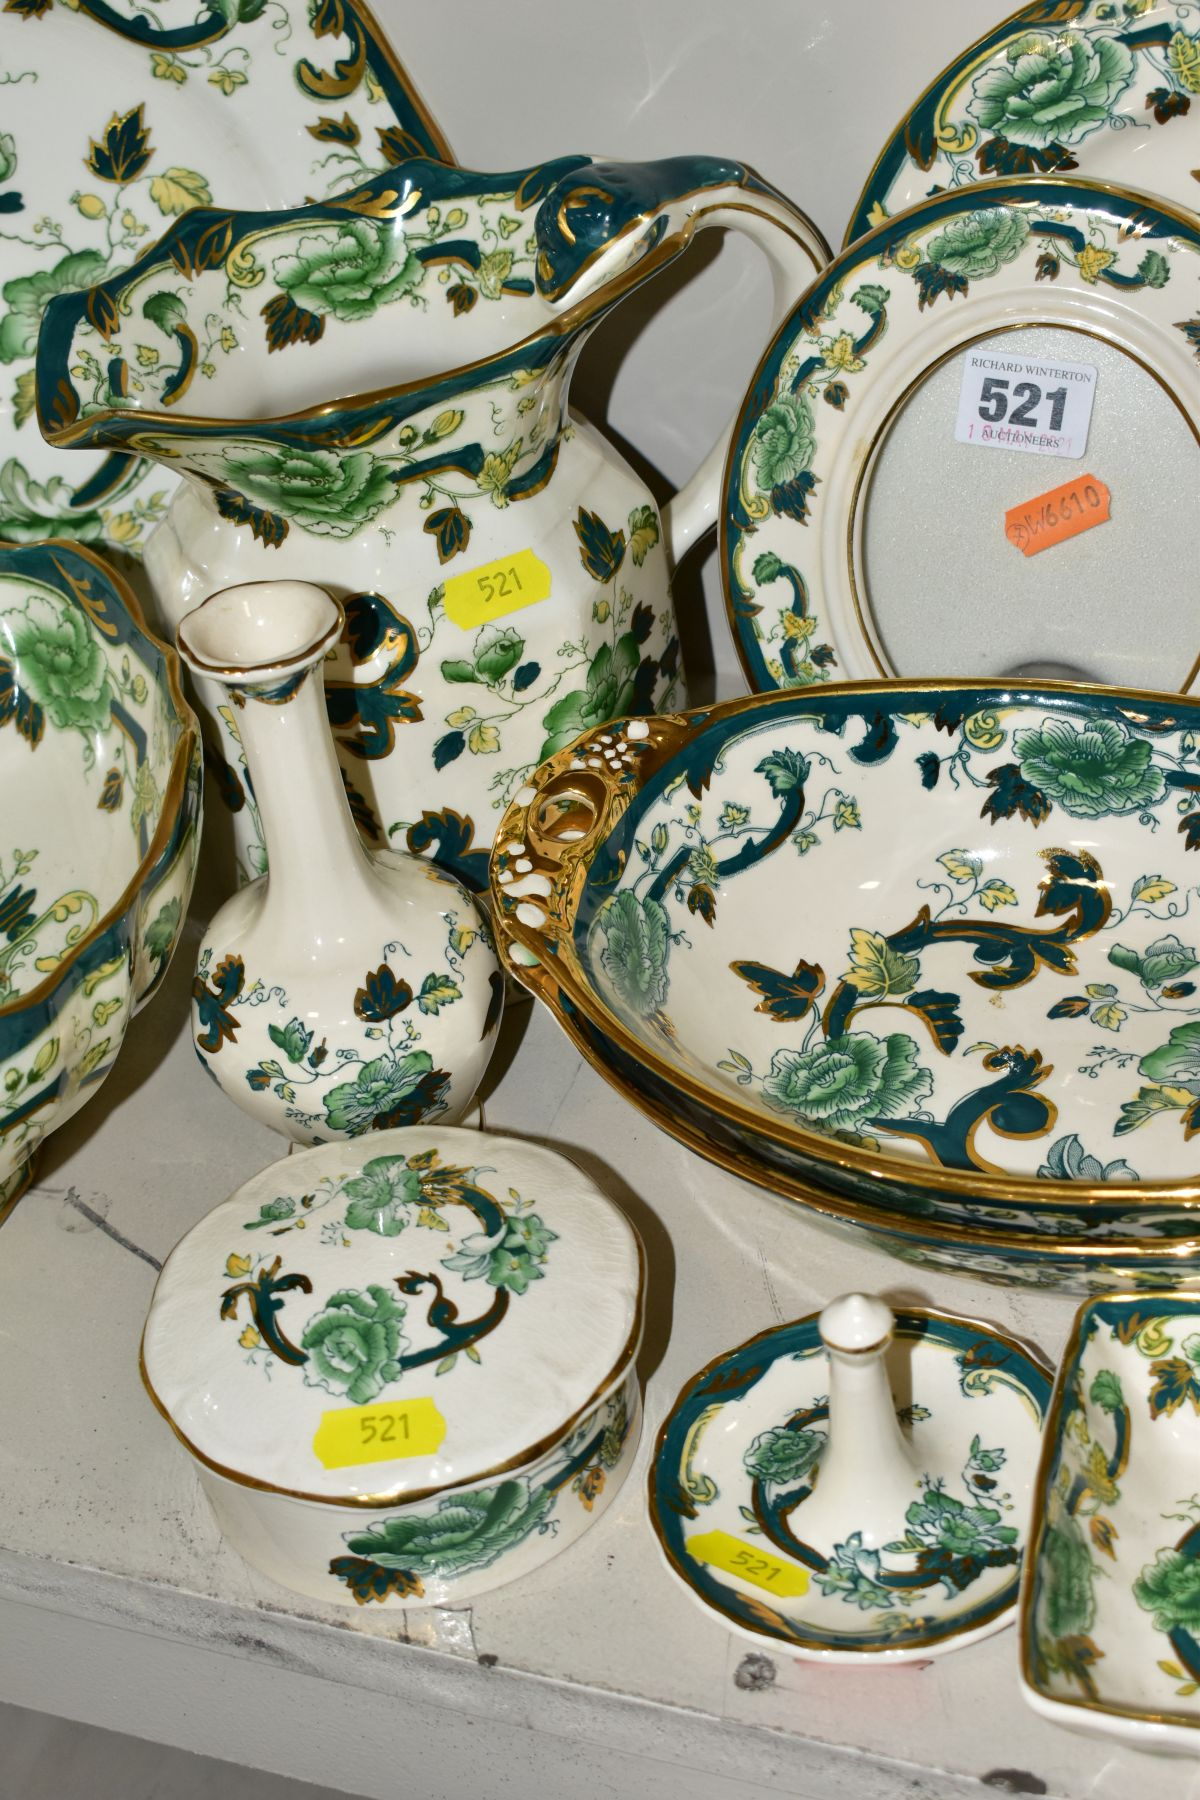 A COLLECTION OF MASONS IRONSTONE 'CHARTREUSE' PATTERN PLATES, JUGS, BOWLS, GINGER JARS, etc, - Image 3 of 7